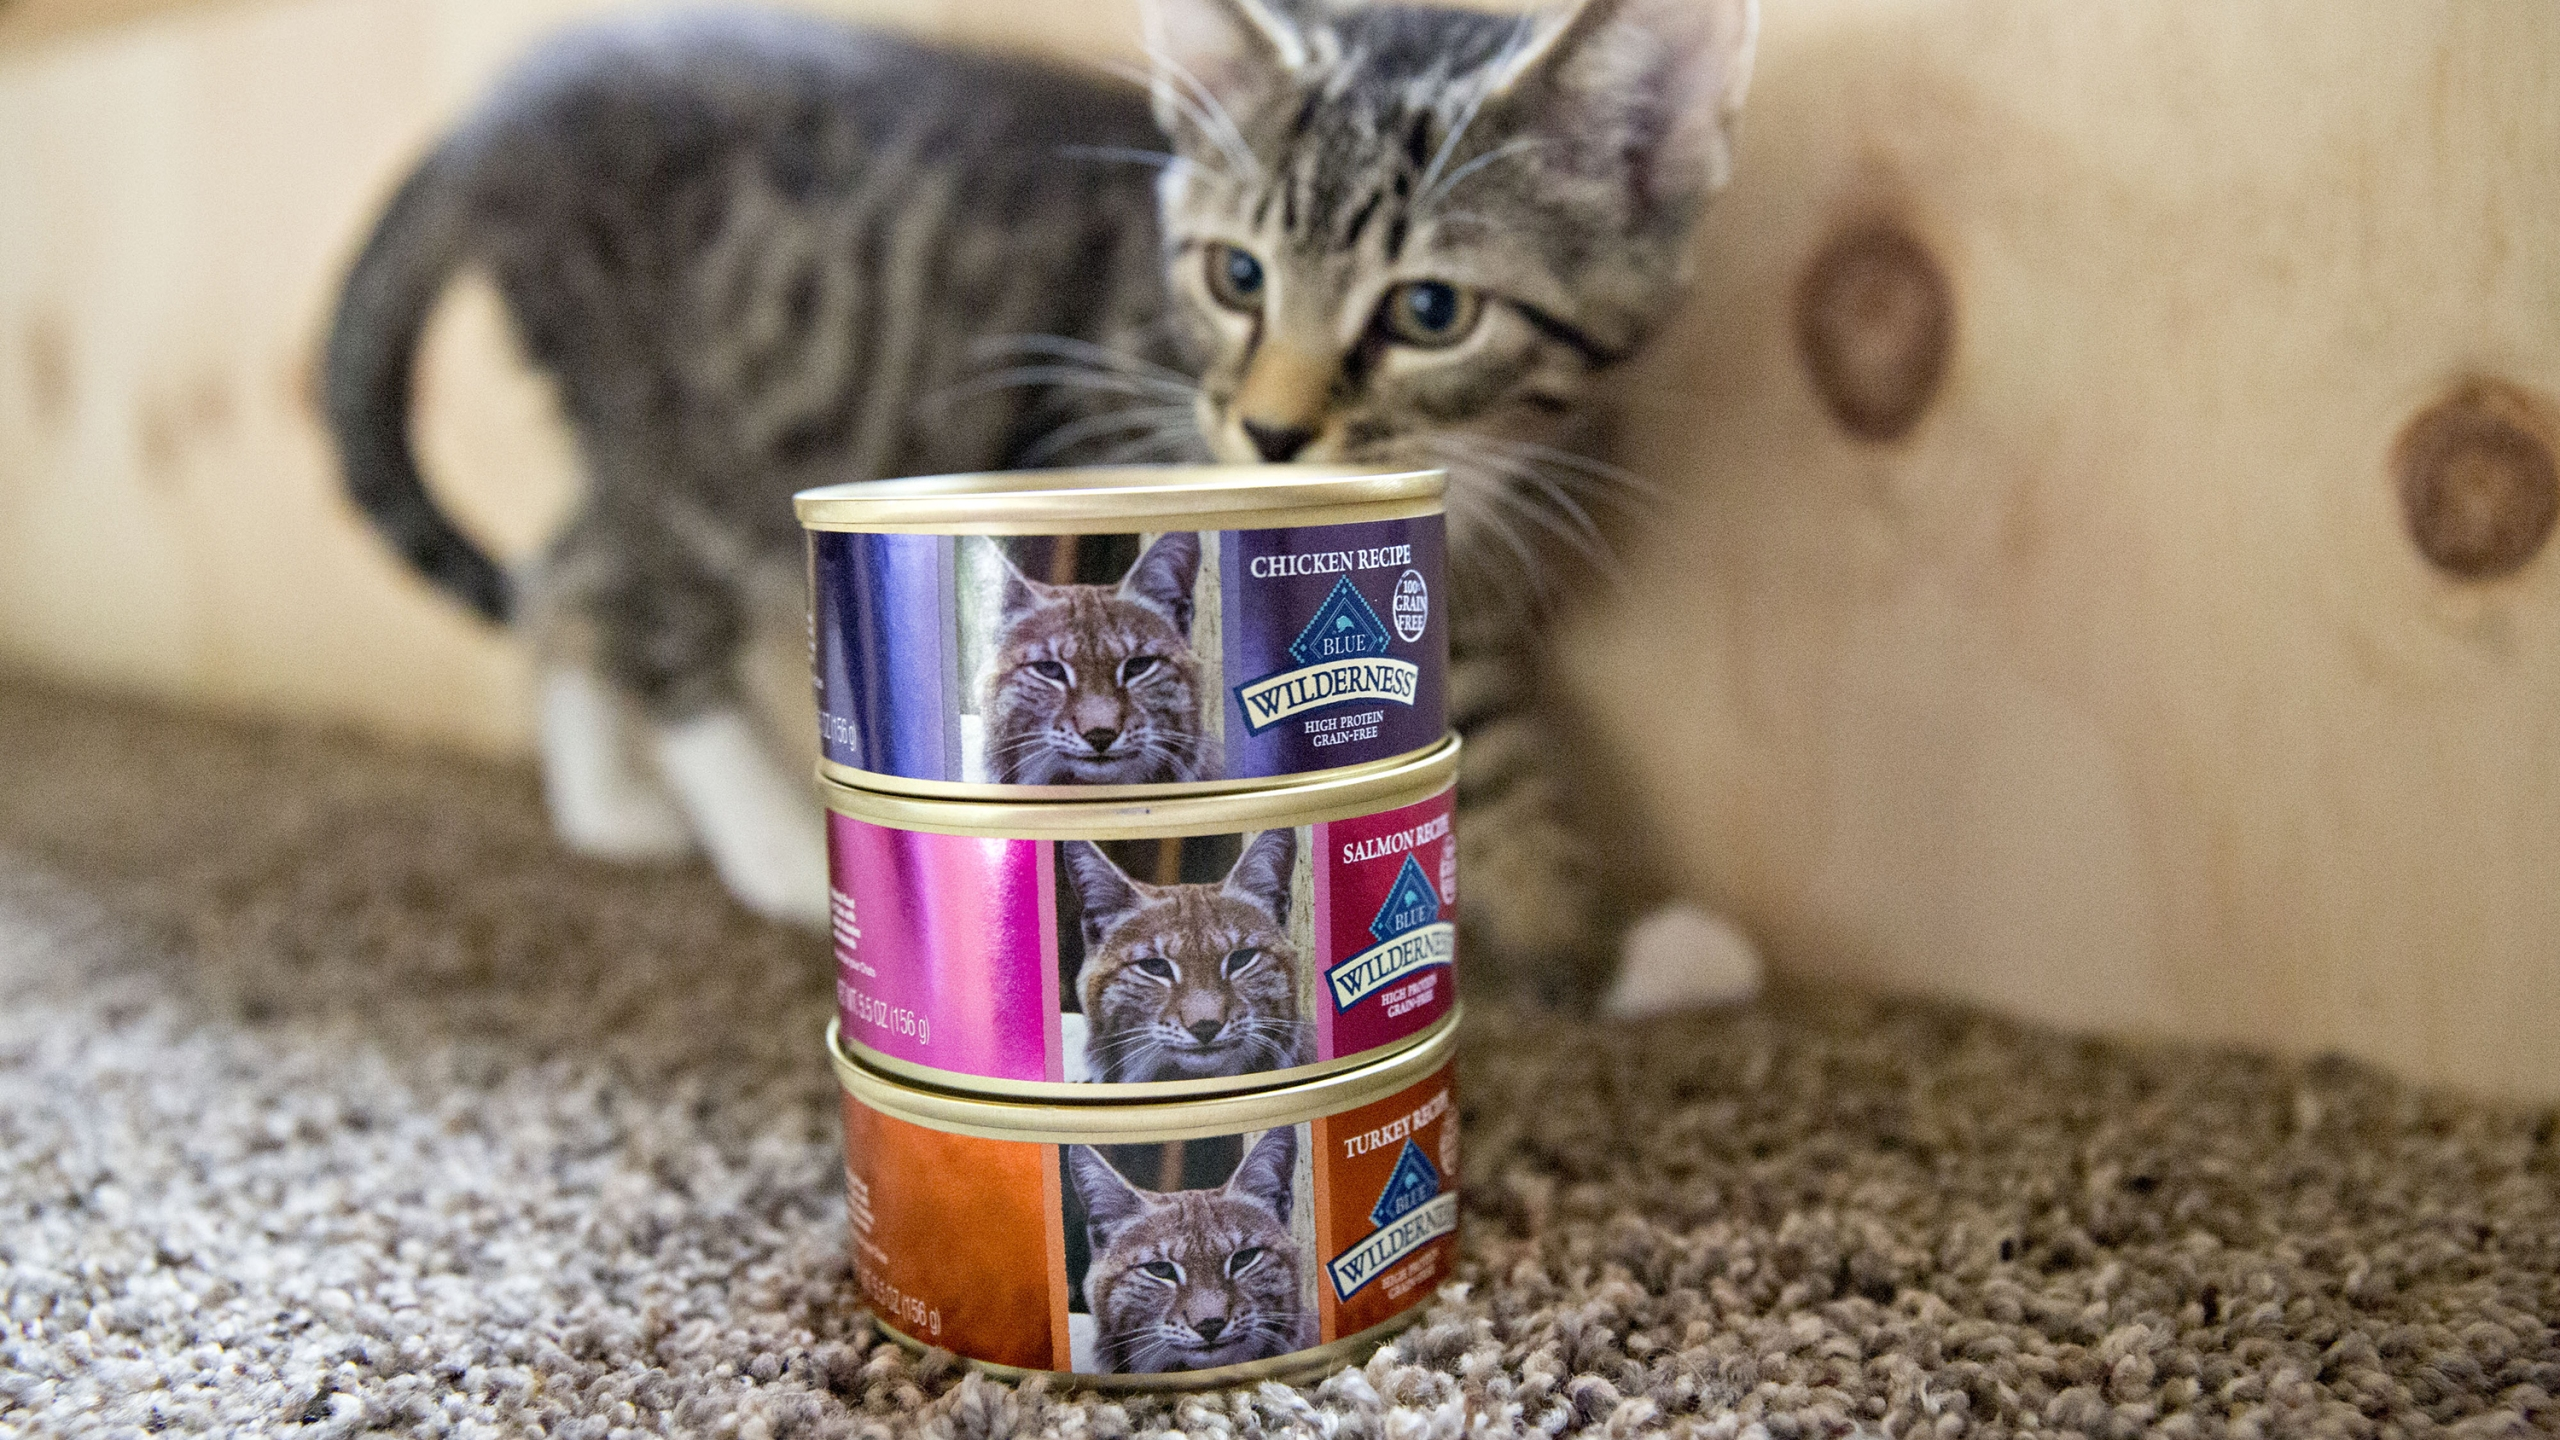 Picture of cat next to pet food